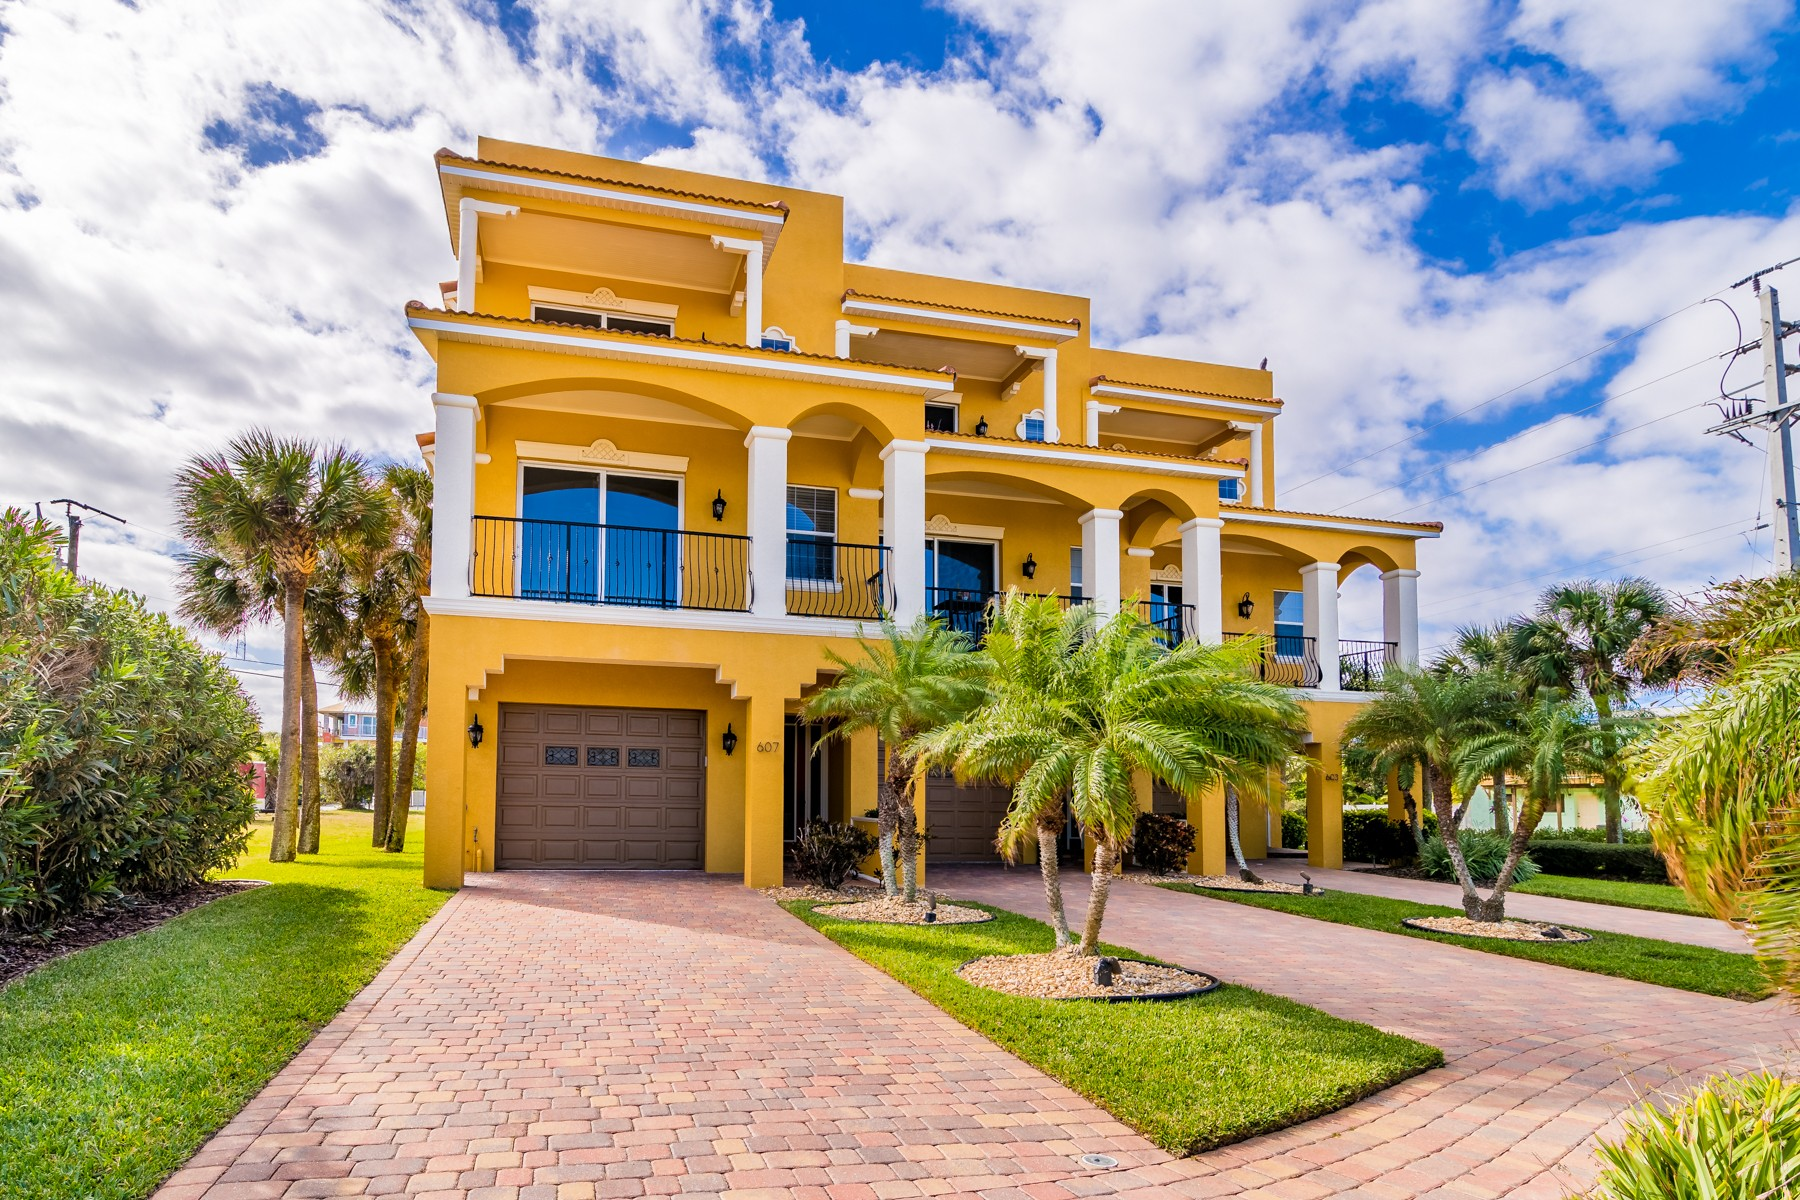 townhouses for Sale at Villagio Del Mar 603 Washington Avenue Unit 1 Cape Canaveral, Florida 32920 United States